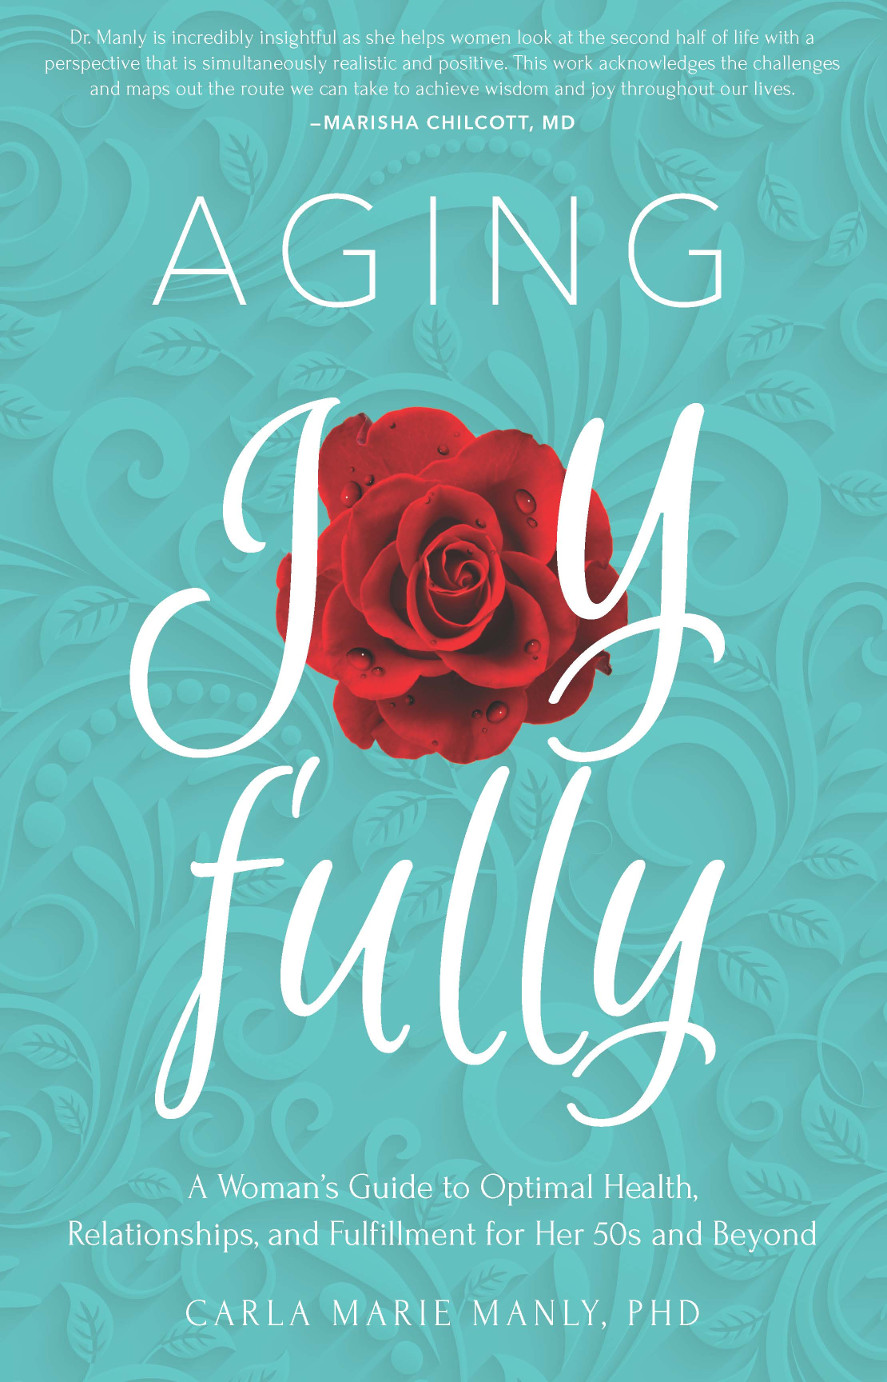 Front Cover of Aging Joyfully book